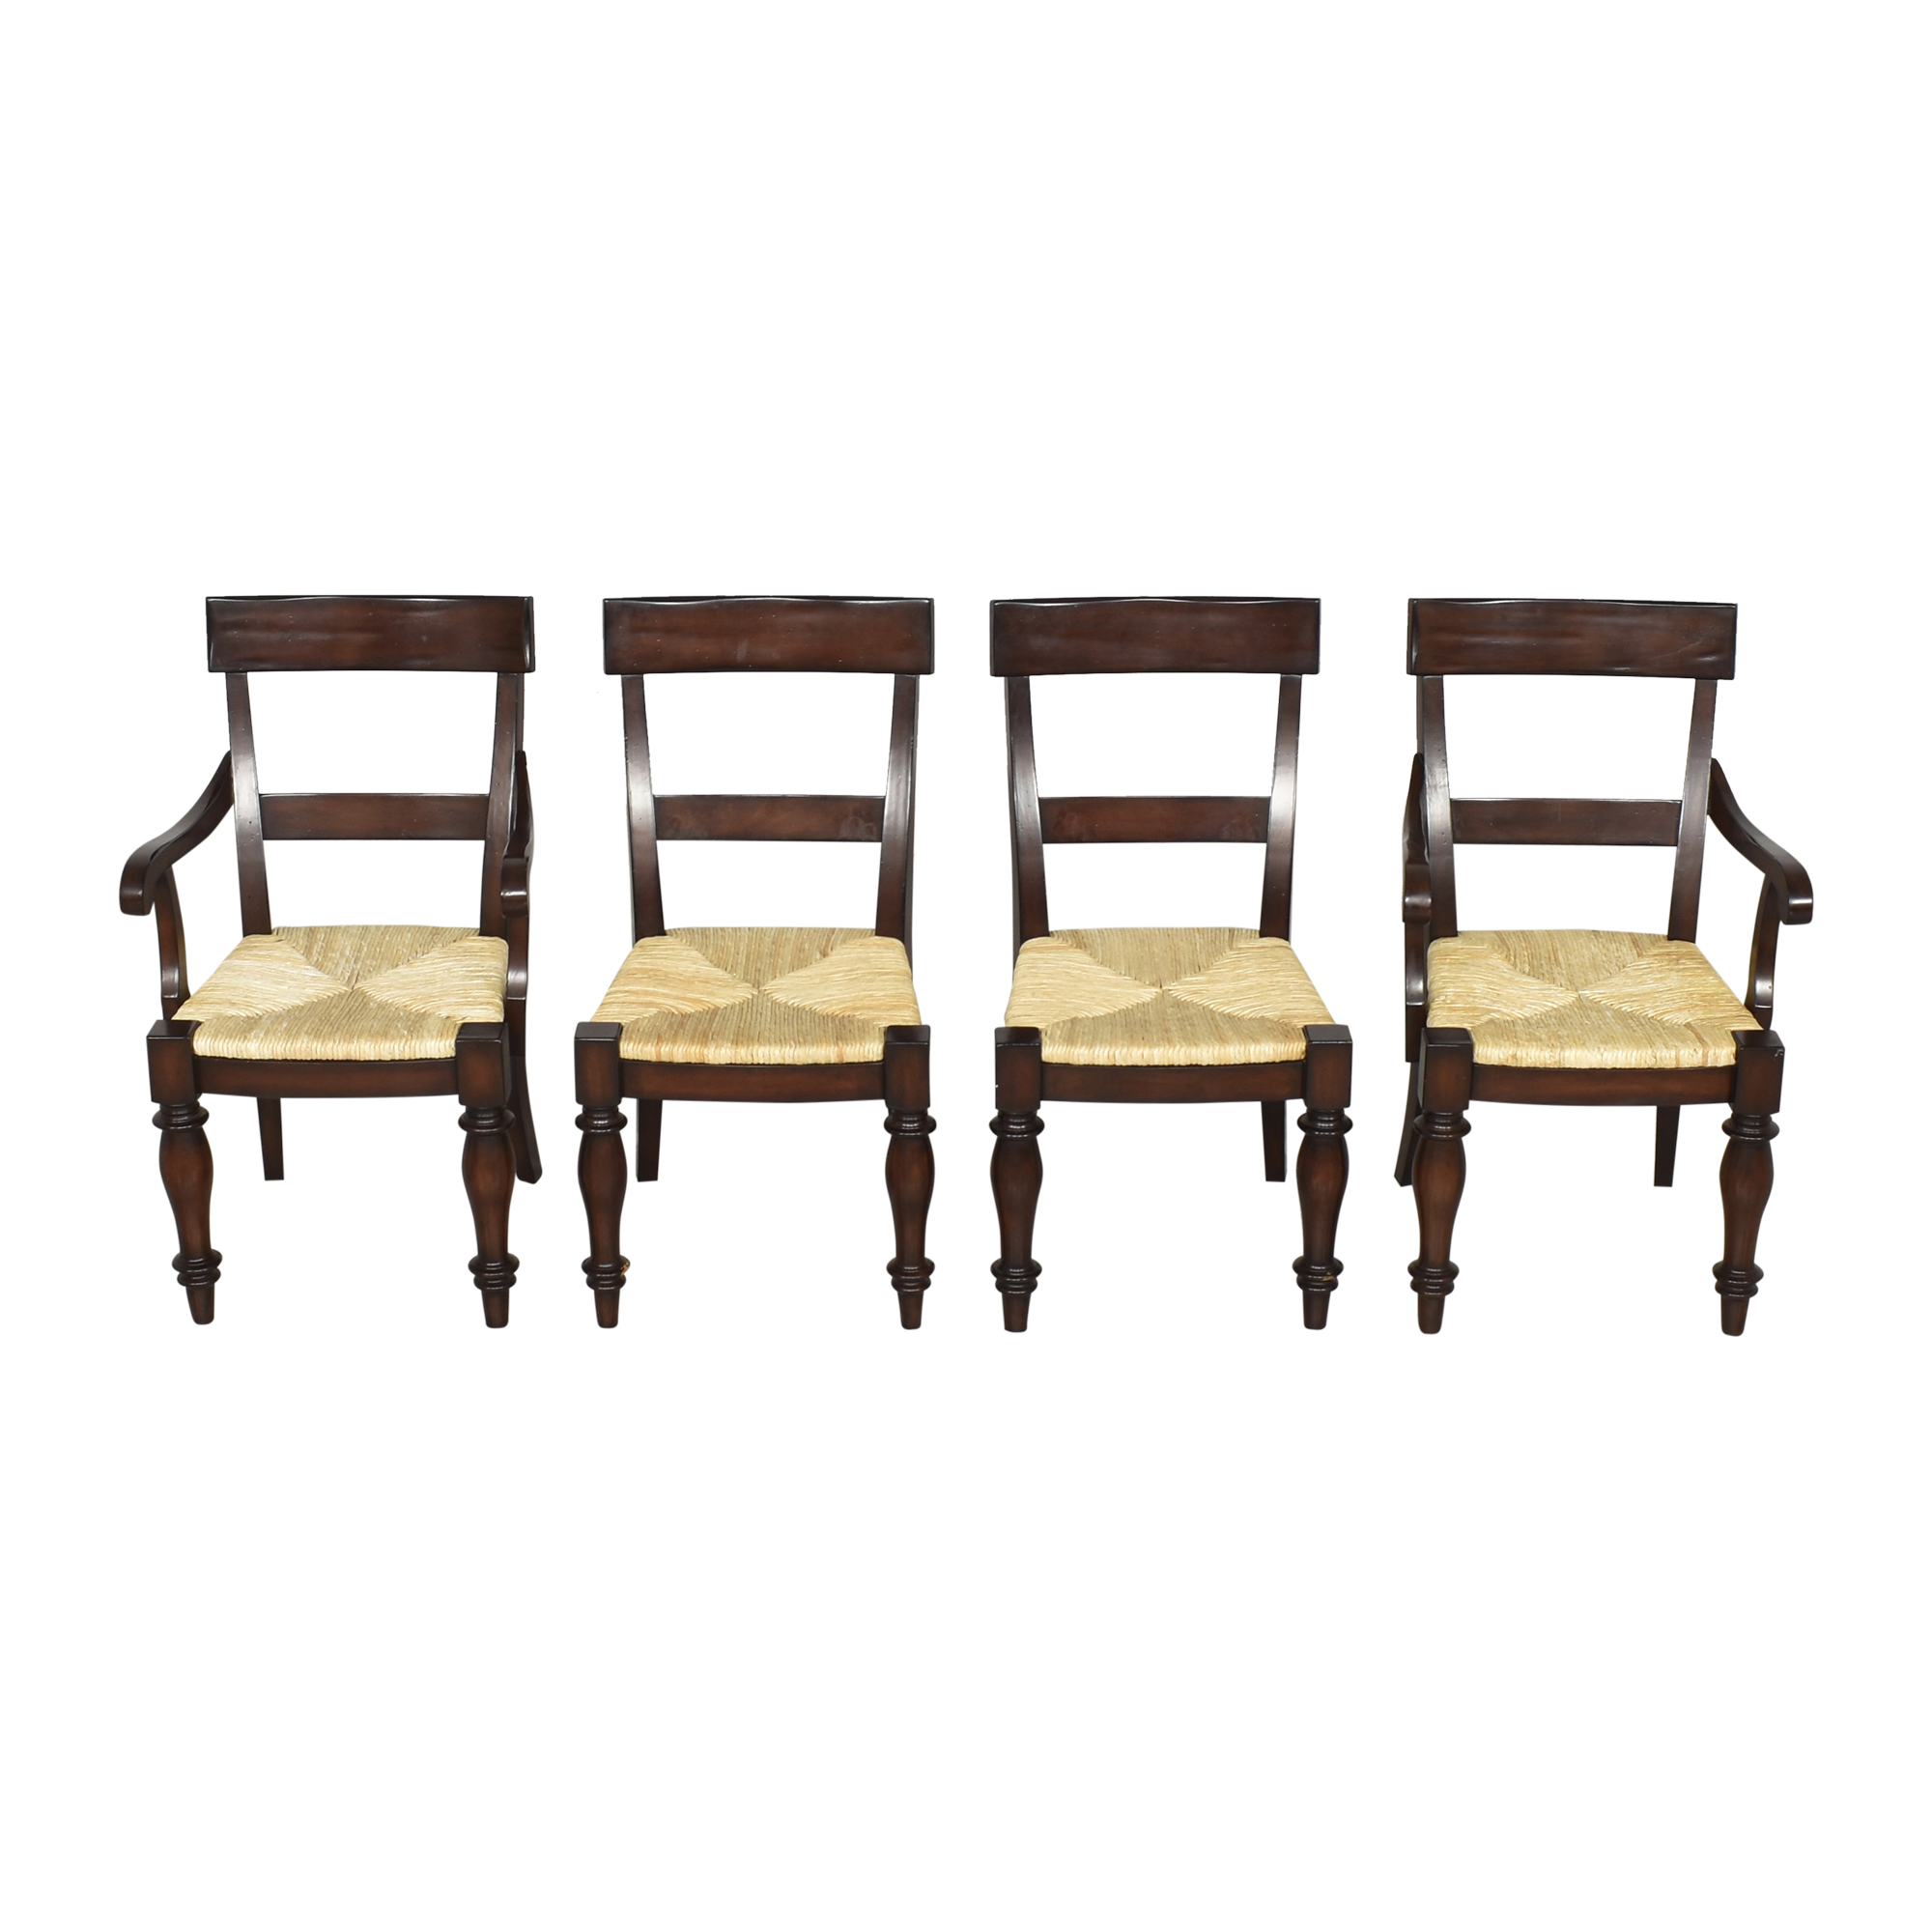 Pottery Barn Montego Dining Chairs / Chairs